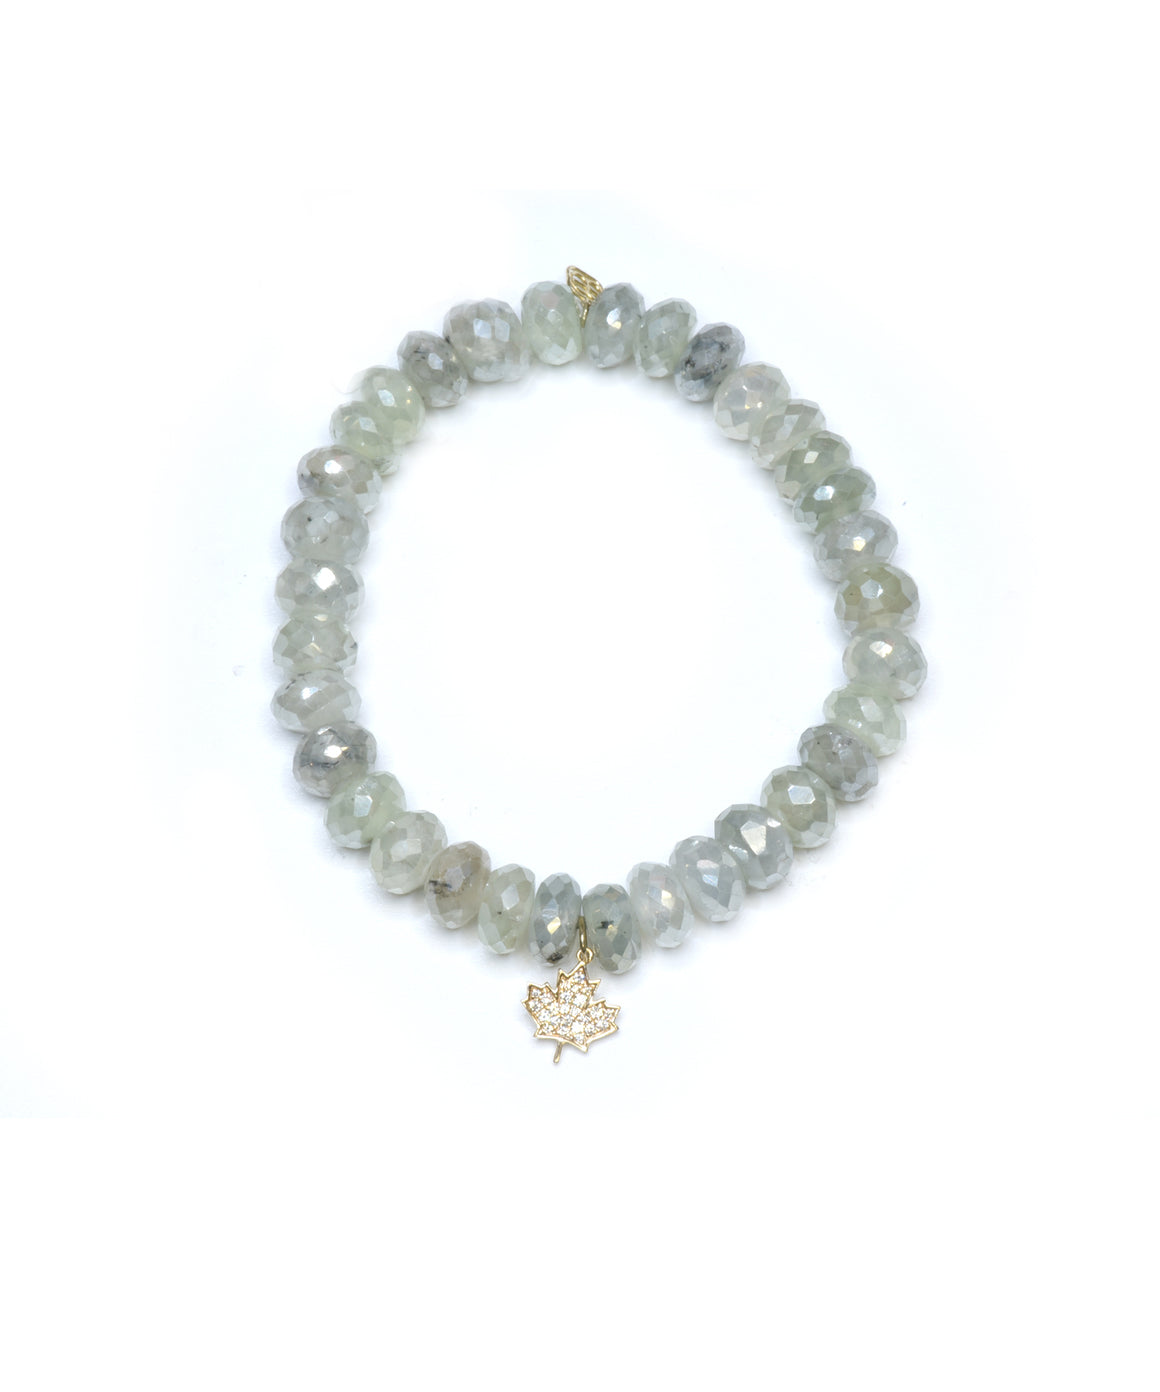 Prehnite bead bracelet with maple leaf charm